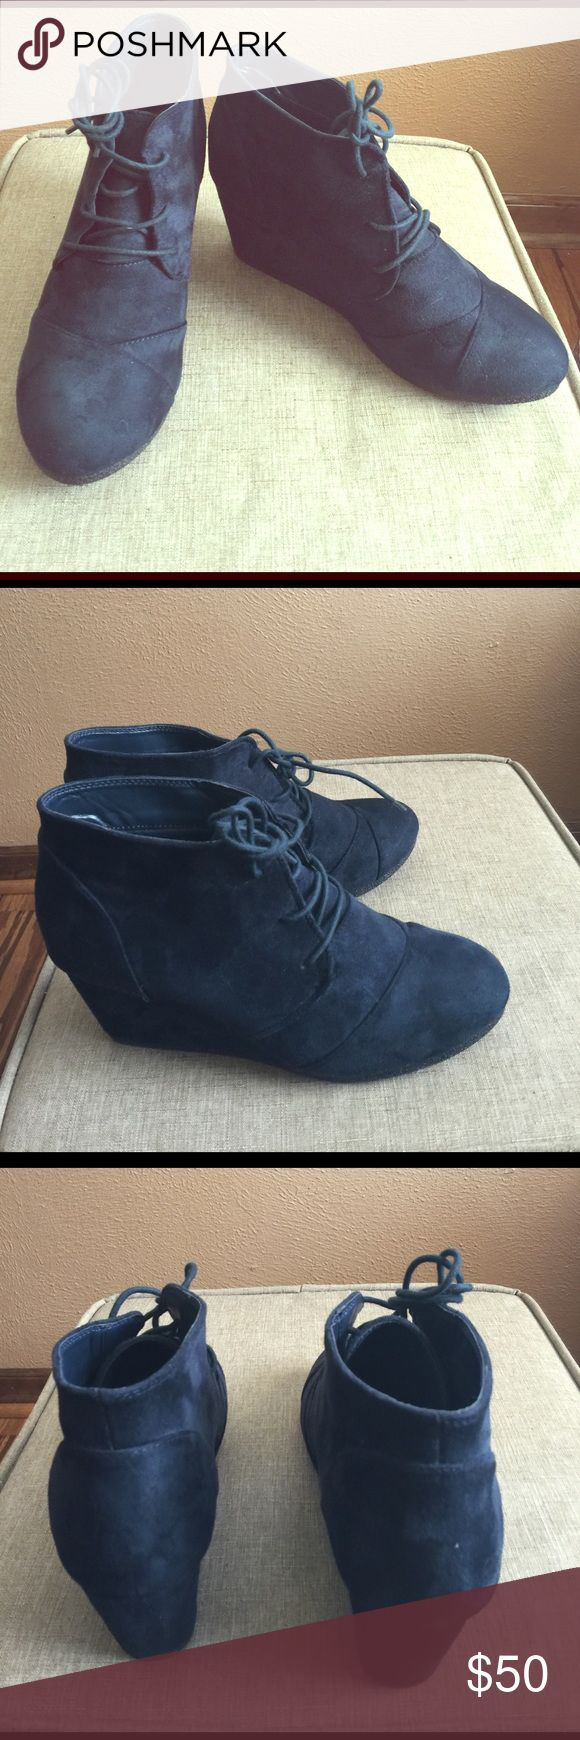 Navy Blue wedge bootie 9 1/2 NEW Dream Pairs navy blue wedge booties size 9 1/2 NEW never worn Dream Pairs Shoes Ankle Boots & Booties